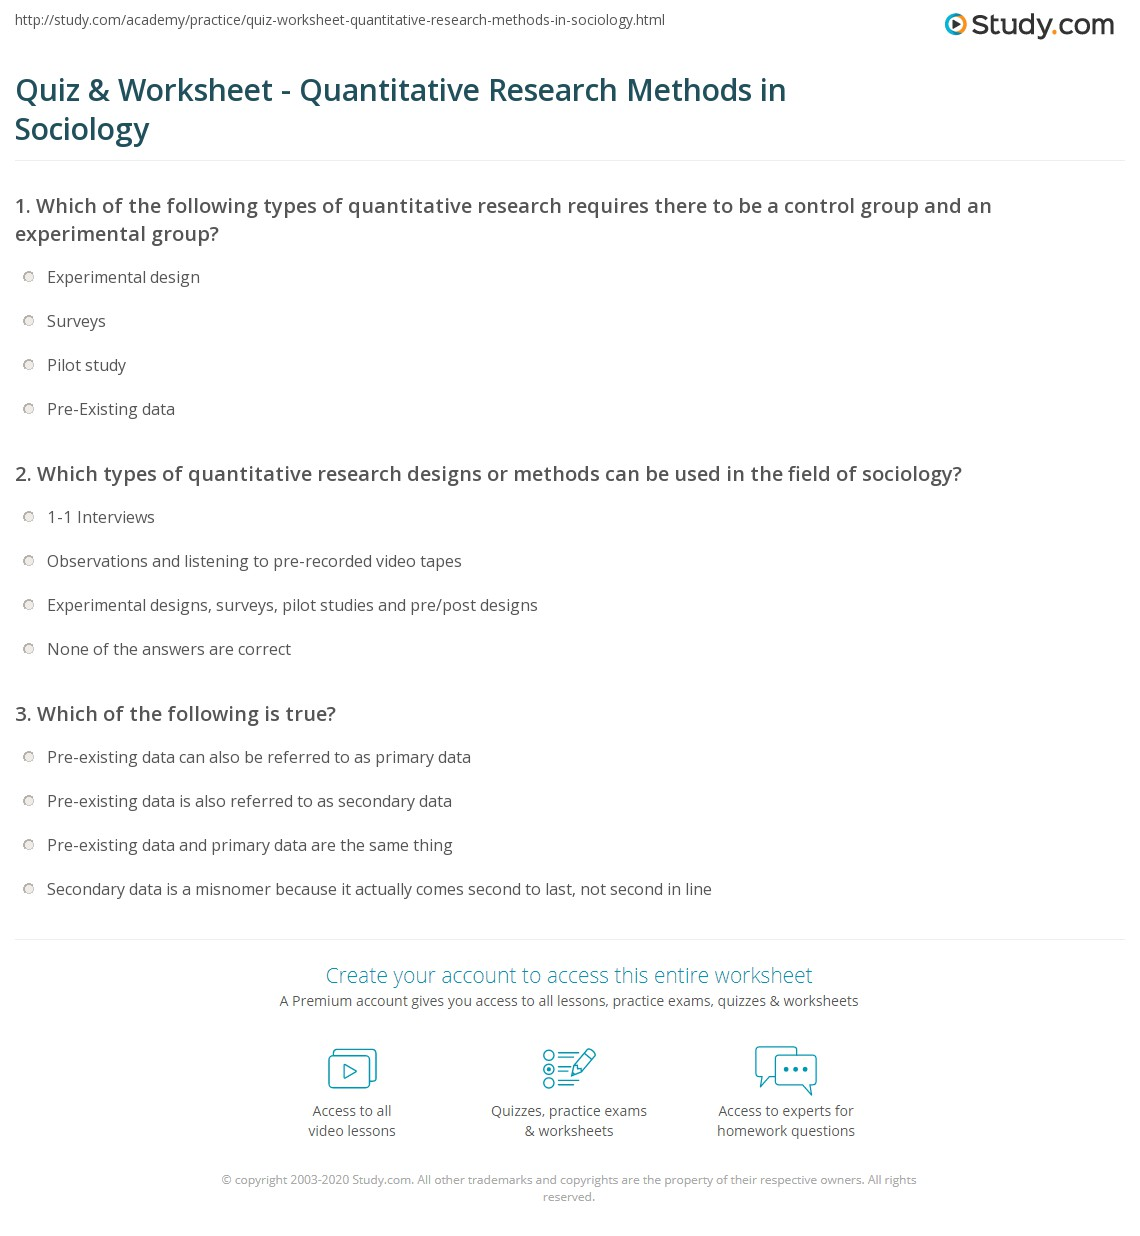 quiz & worksheet - quantitative research methods in sociology